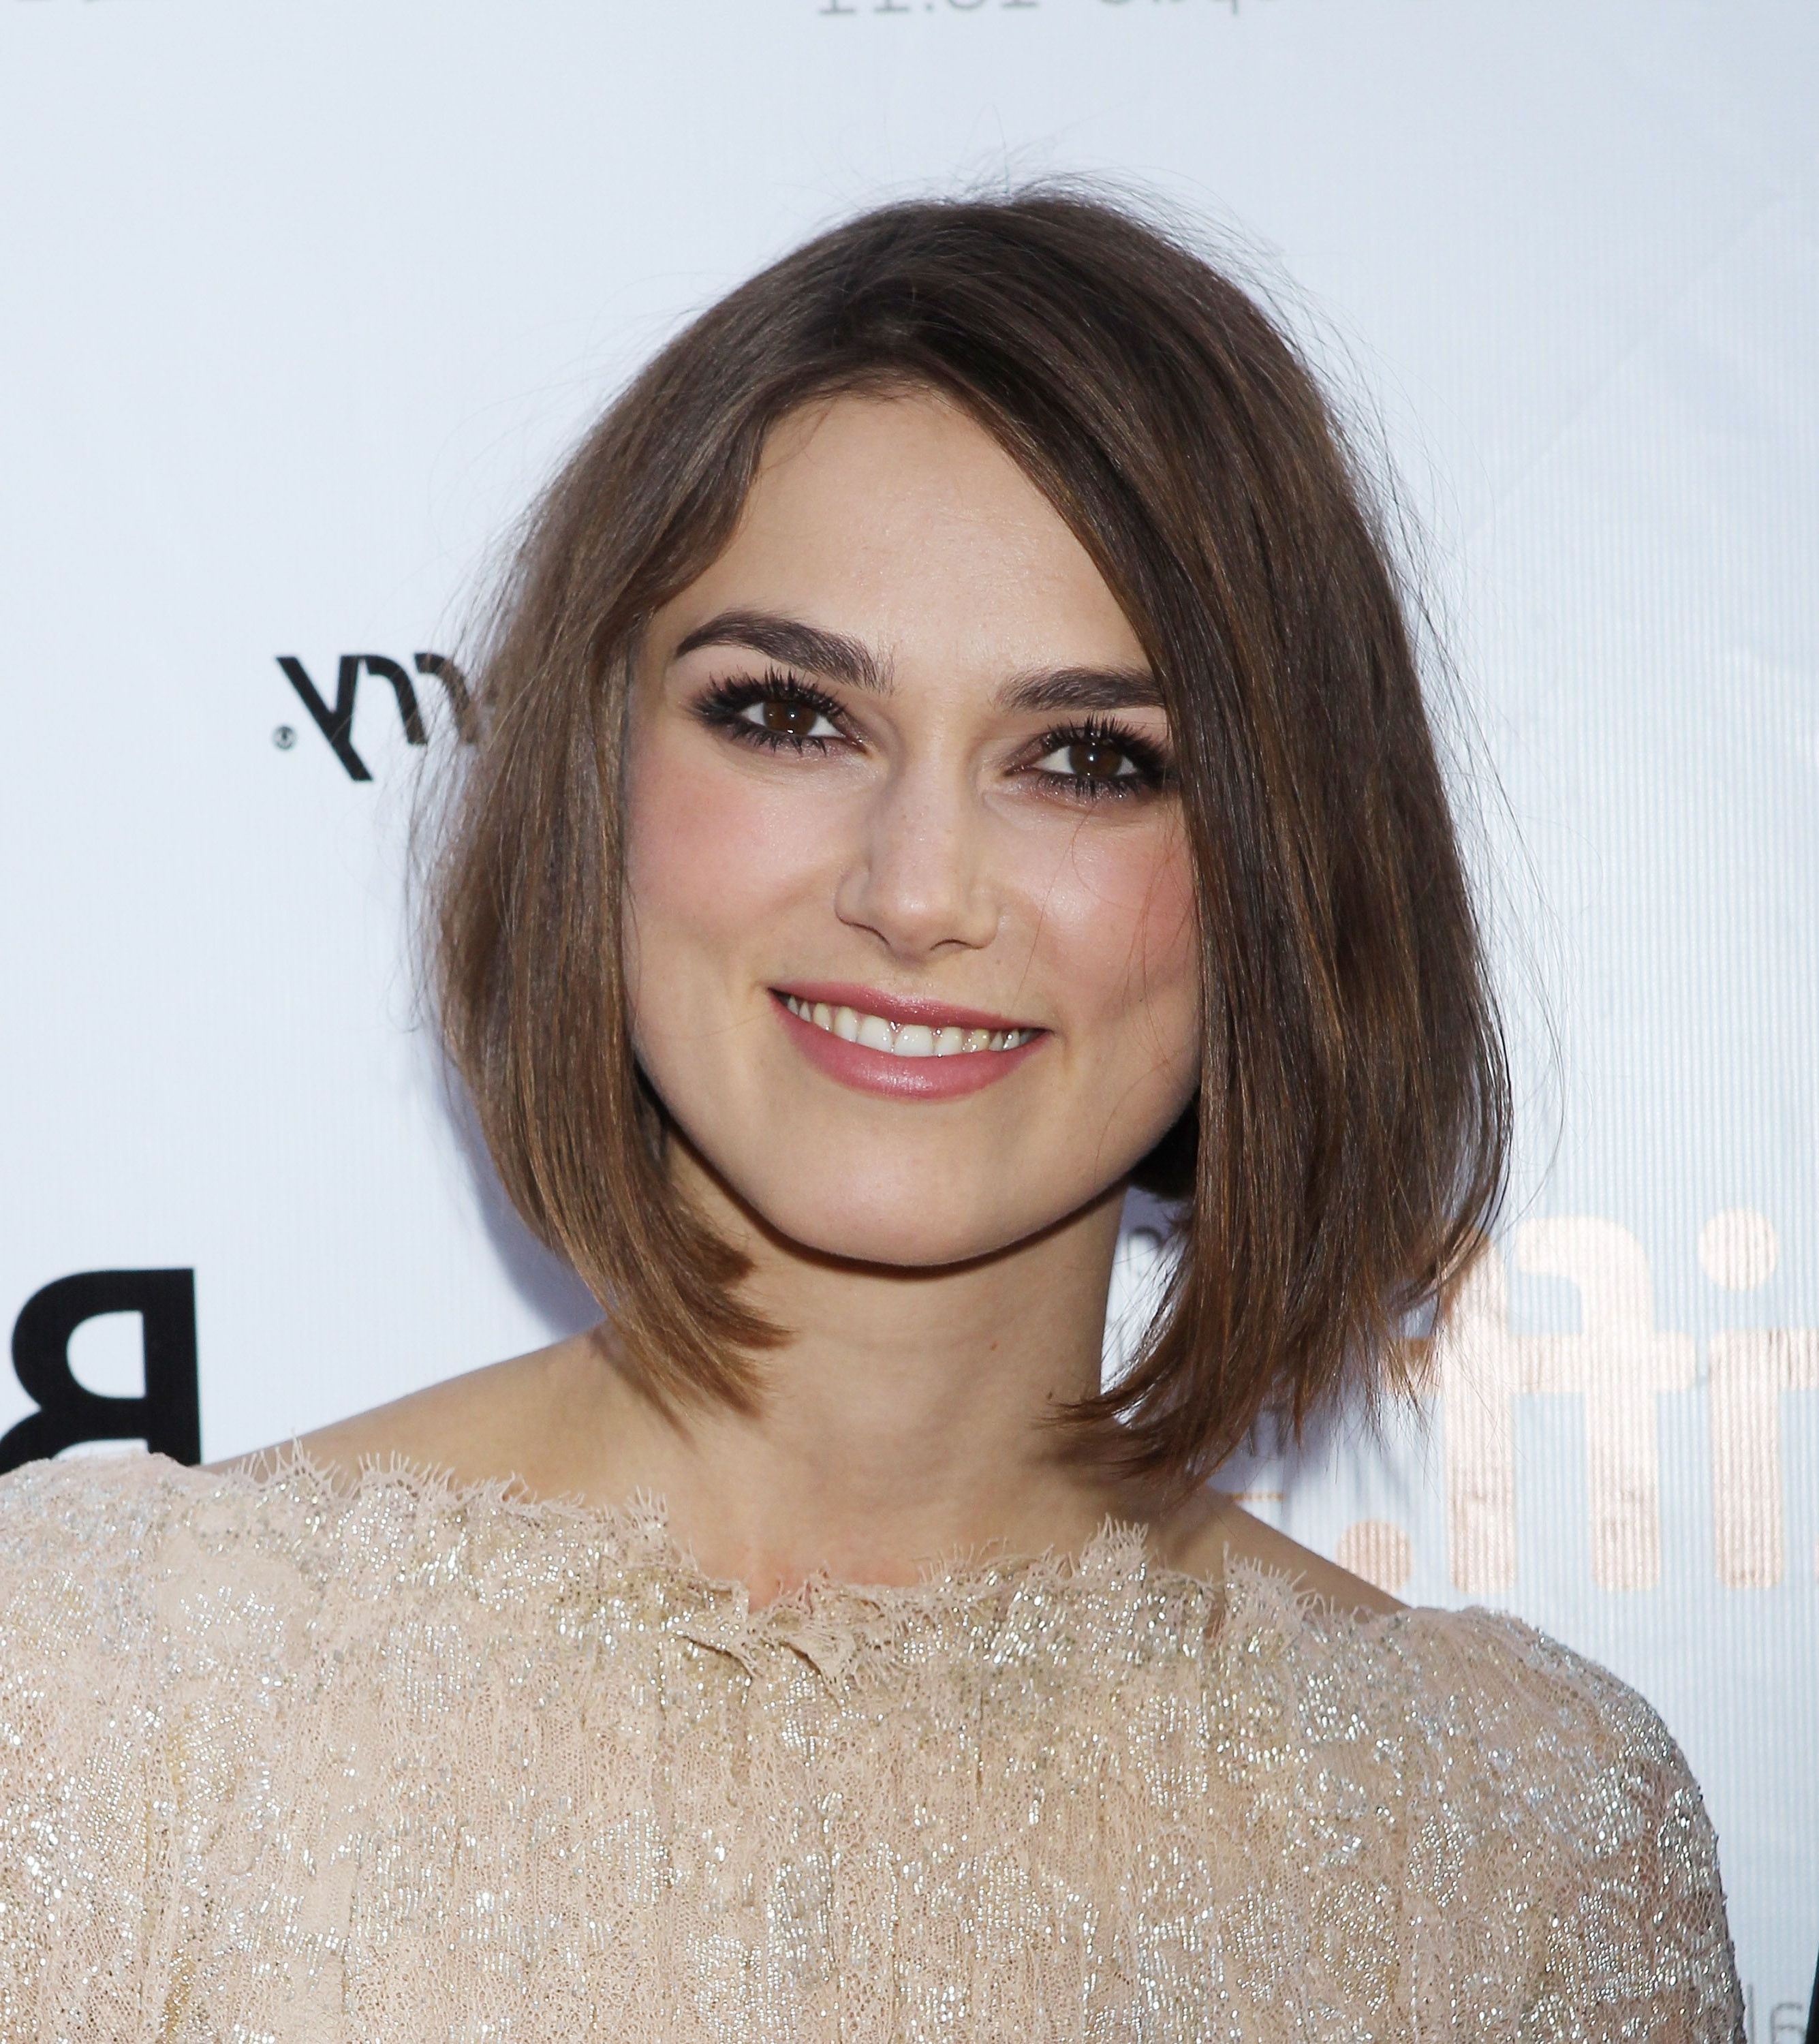 The 13 Best Hairstyles For Square Faces Pertaining To Short Haircuts For Square Jawline (View 2 of 25)